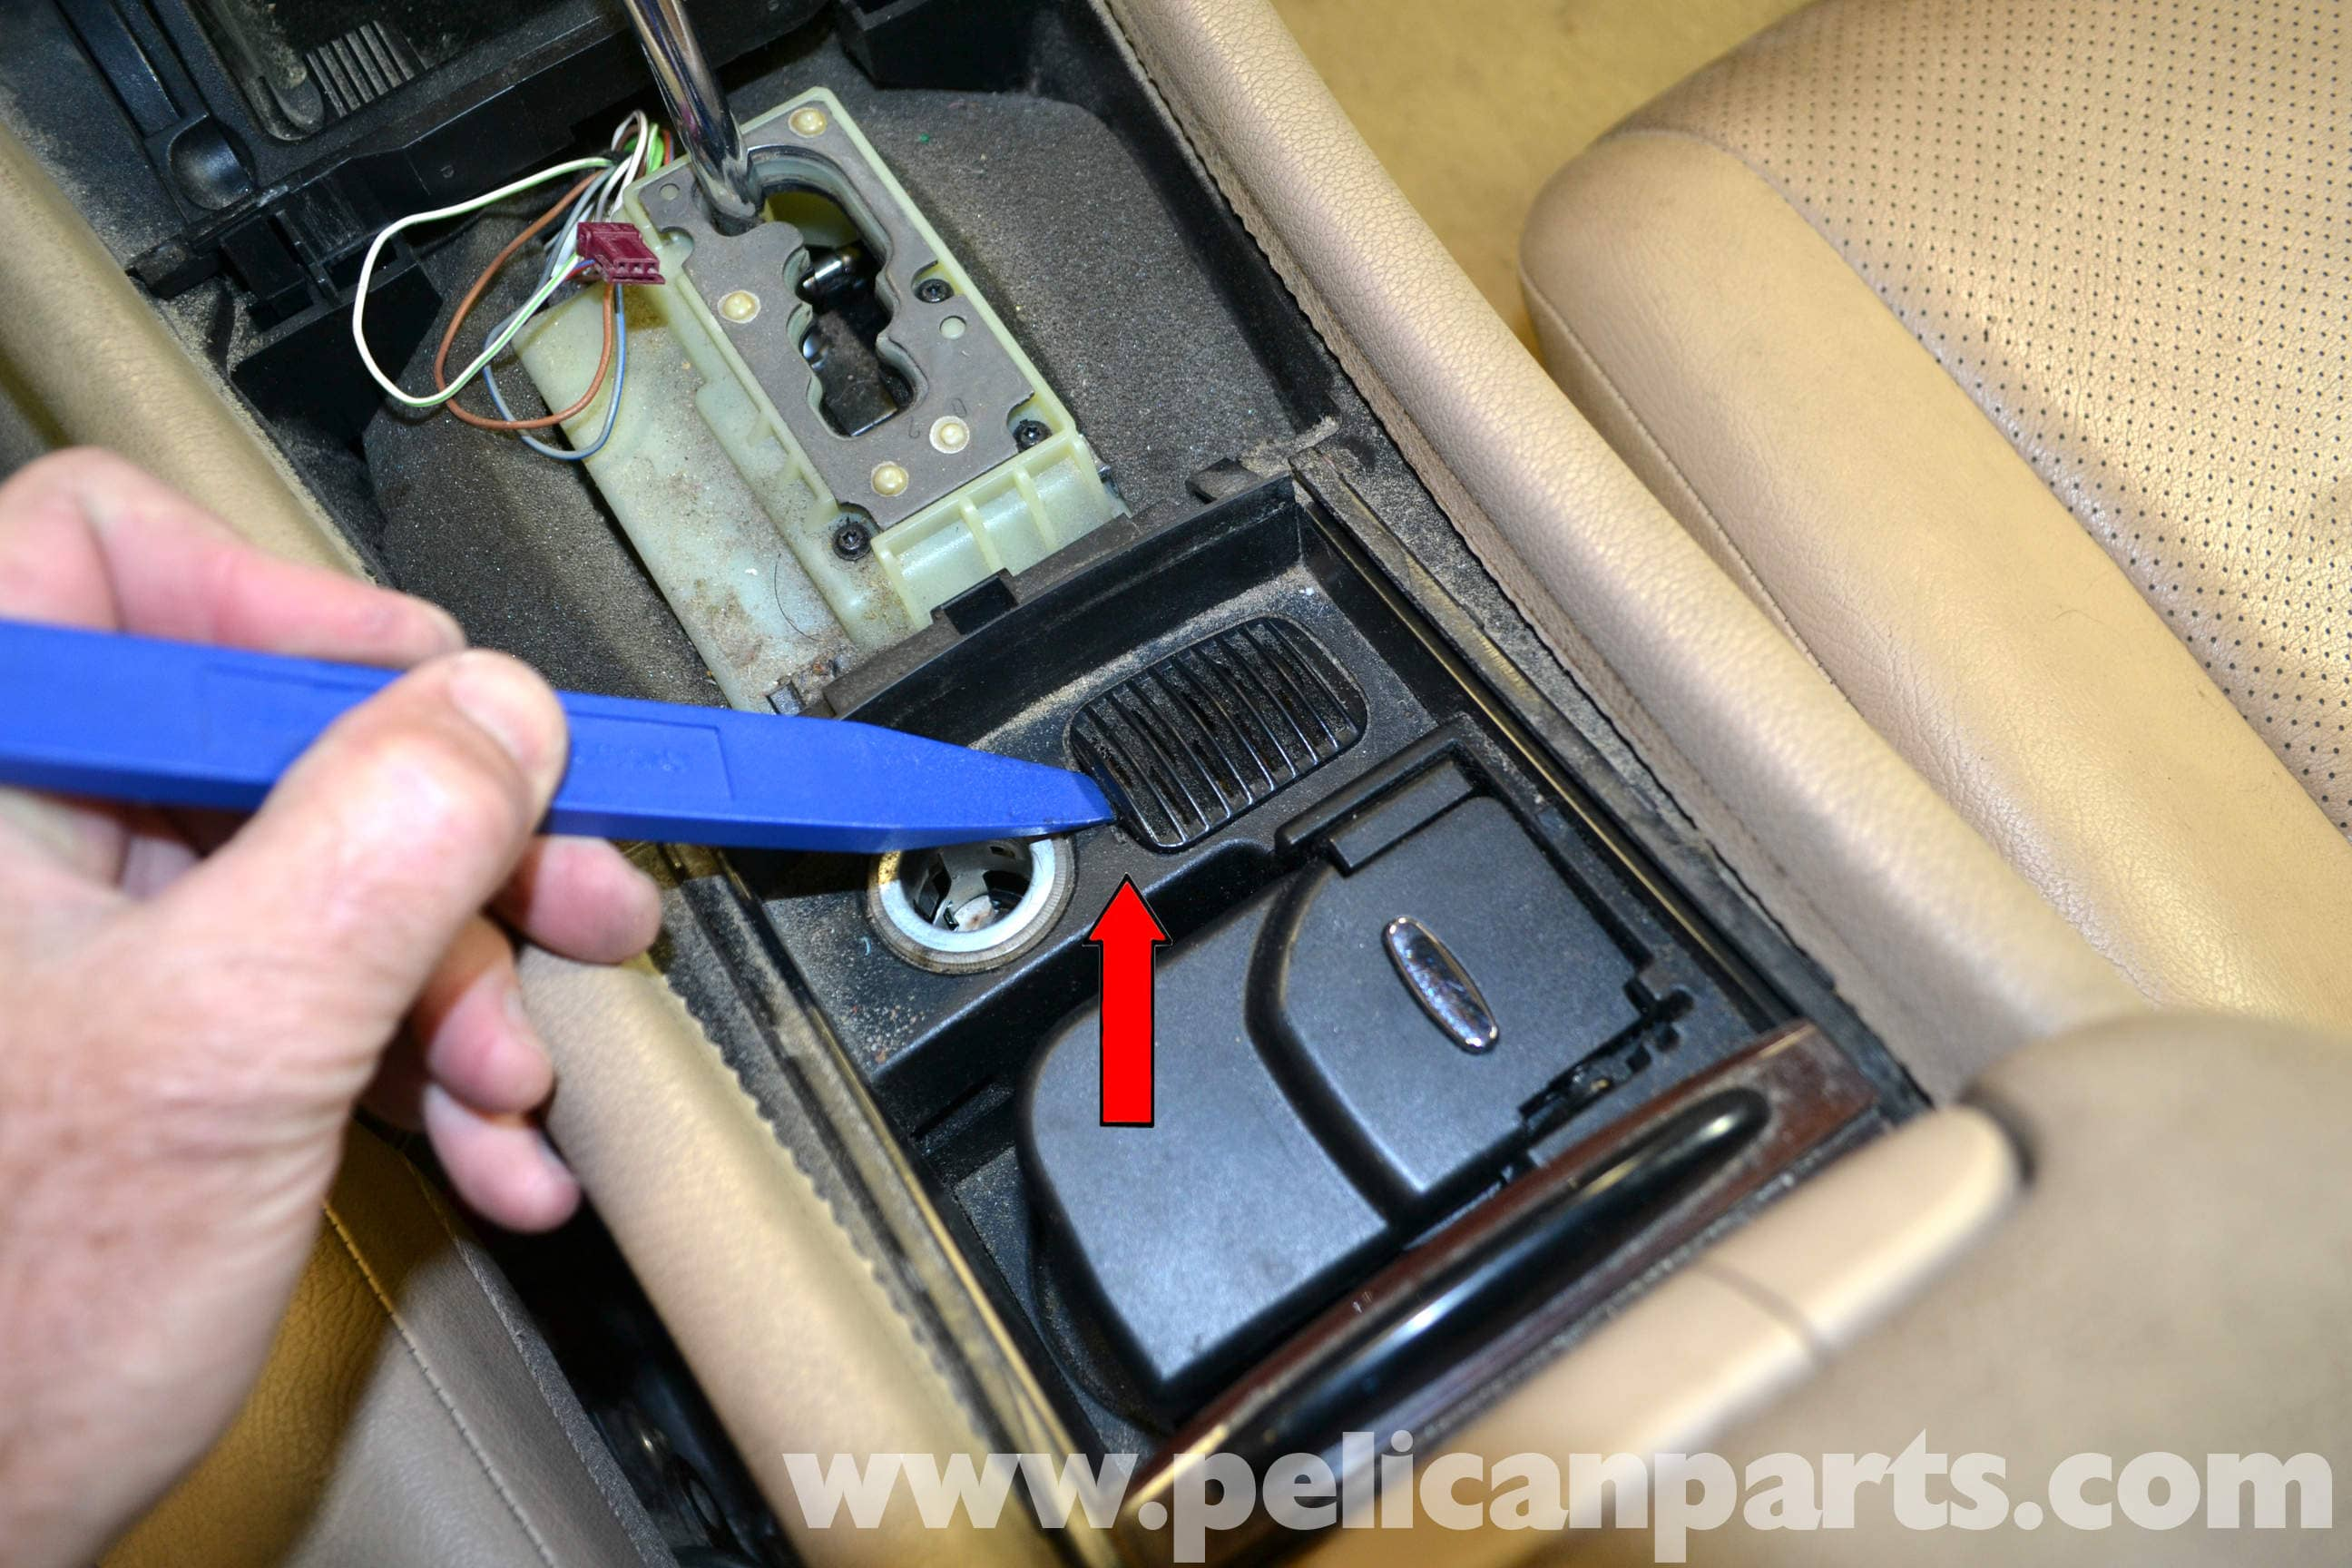 Mercedes benz w203 lower center console removal 2001 for How to unlock mercedes benz without key